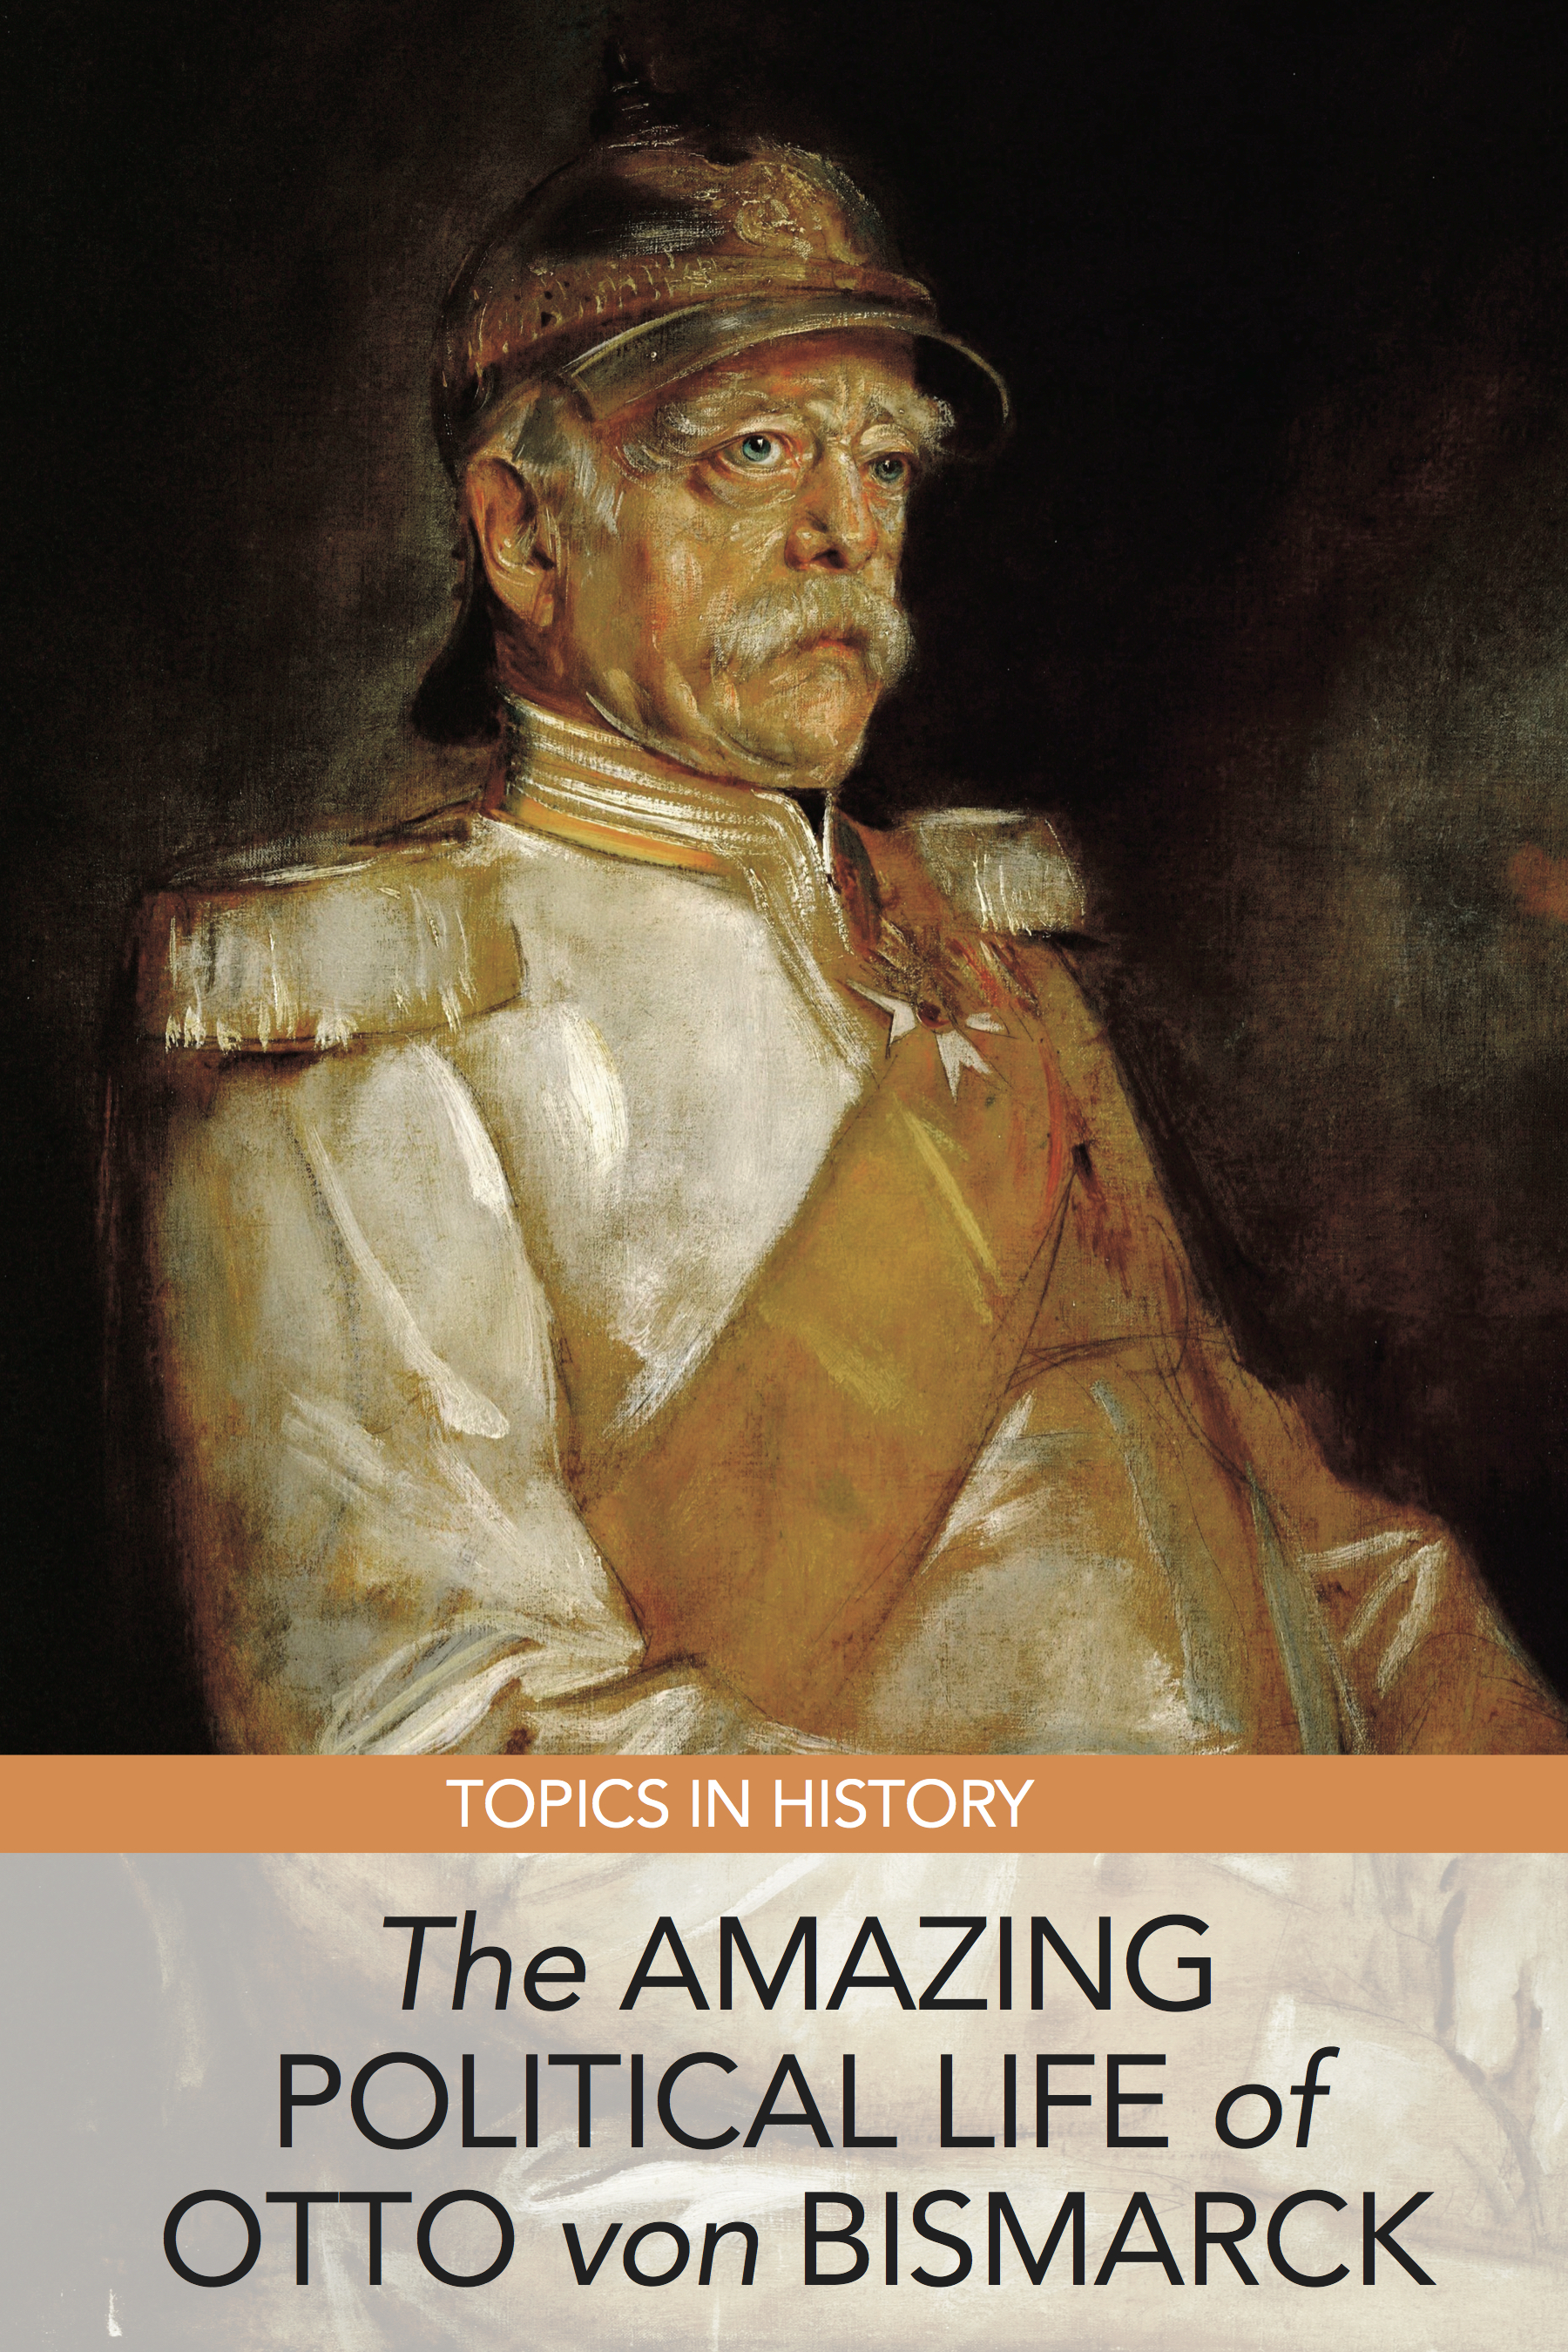 Great read about the leader who unified Germany and was a political force to be reckoned with in 19th c. Europe -- plus good recs for additional reading #homeschool #history